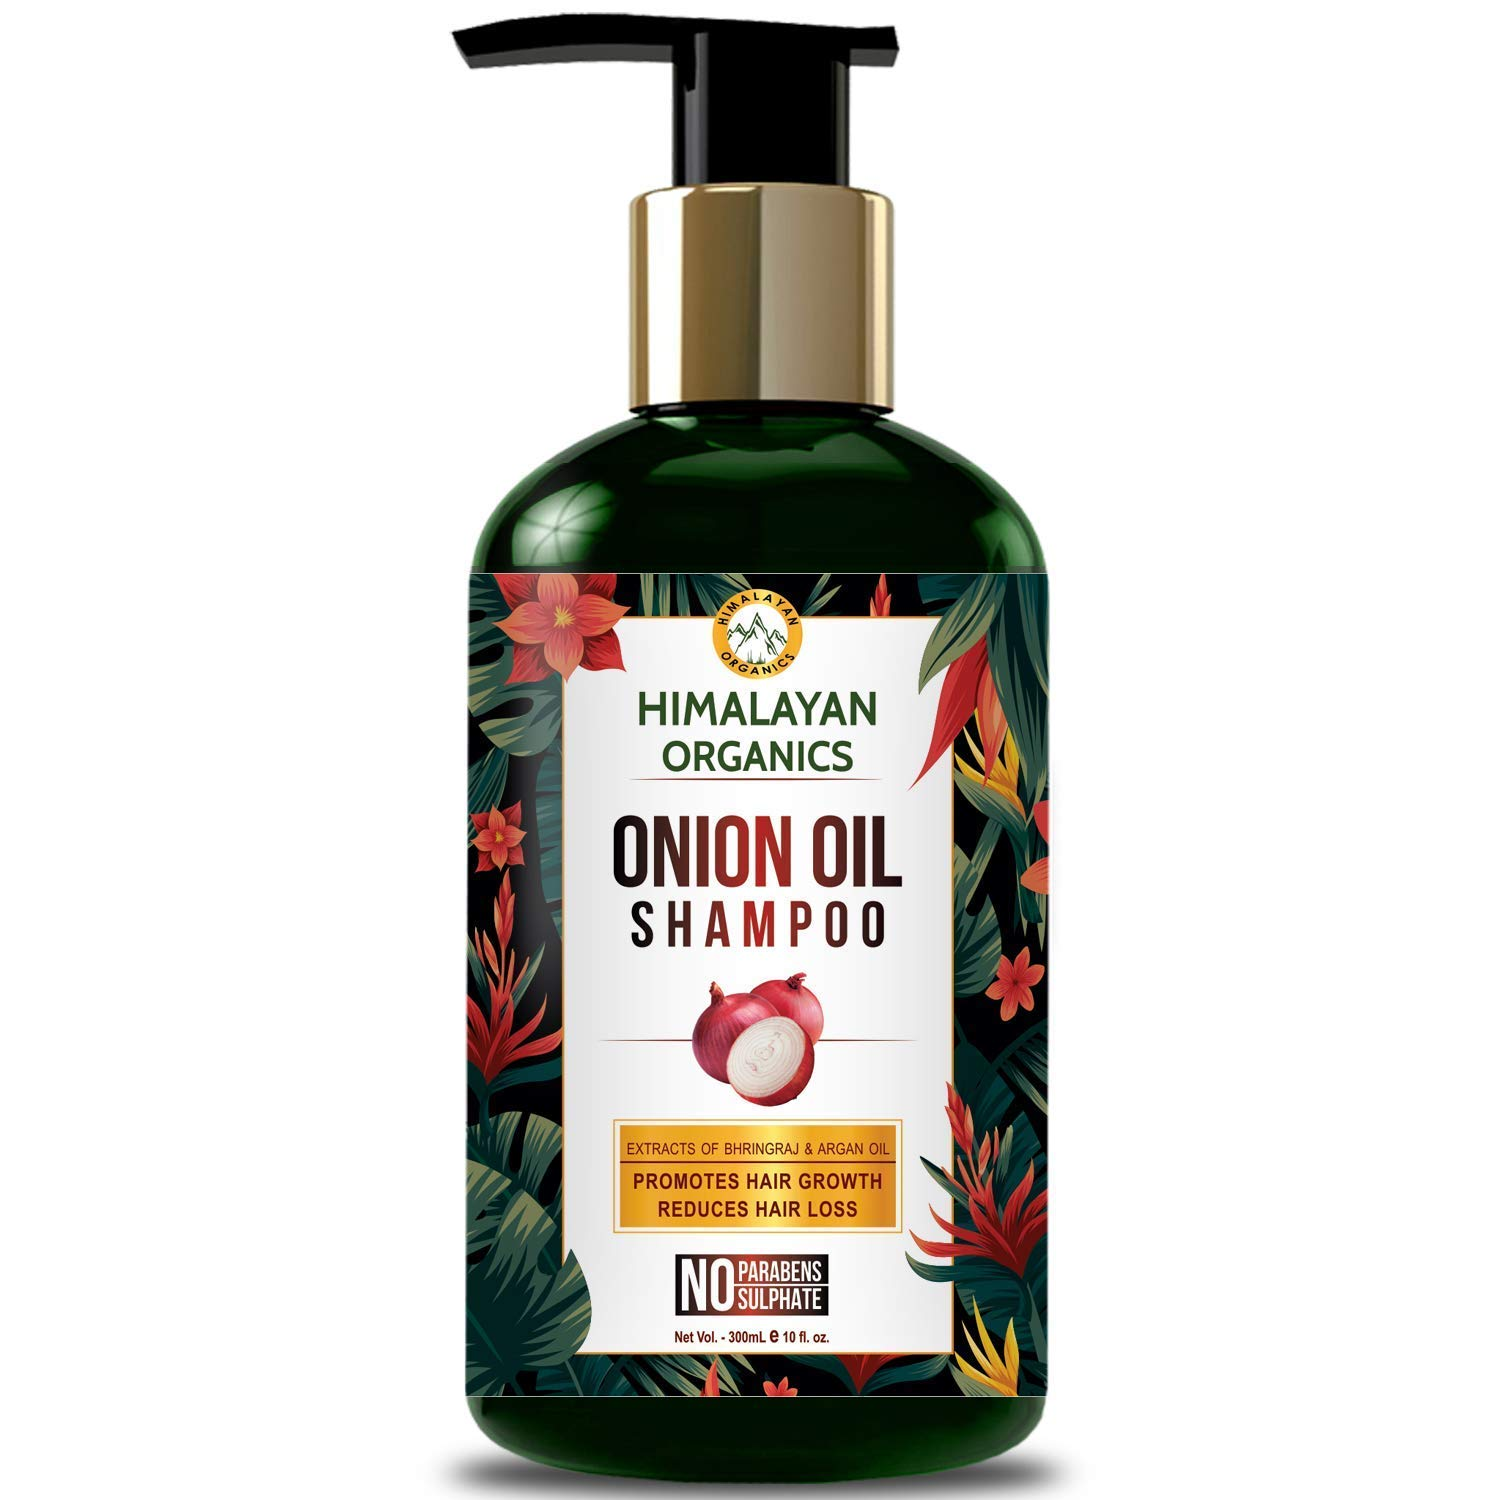 sold out Bellentines Dealing full price reduction Himalayan Organics Onion Oil Parabens No - Shampoo